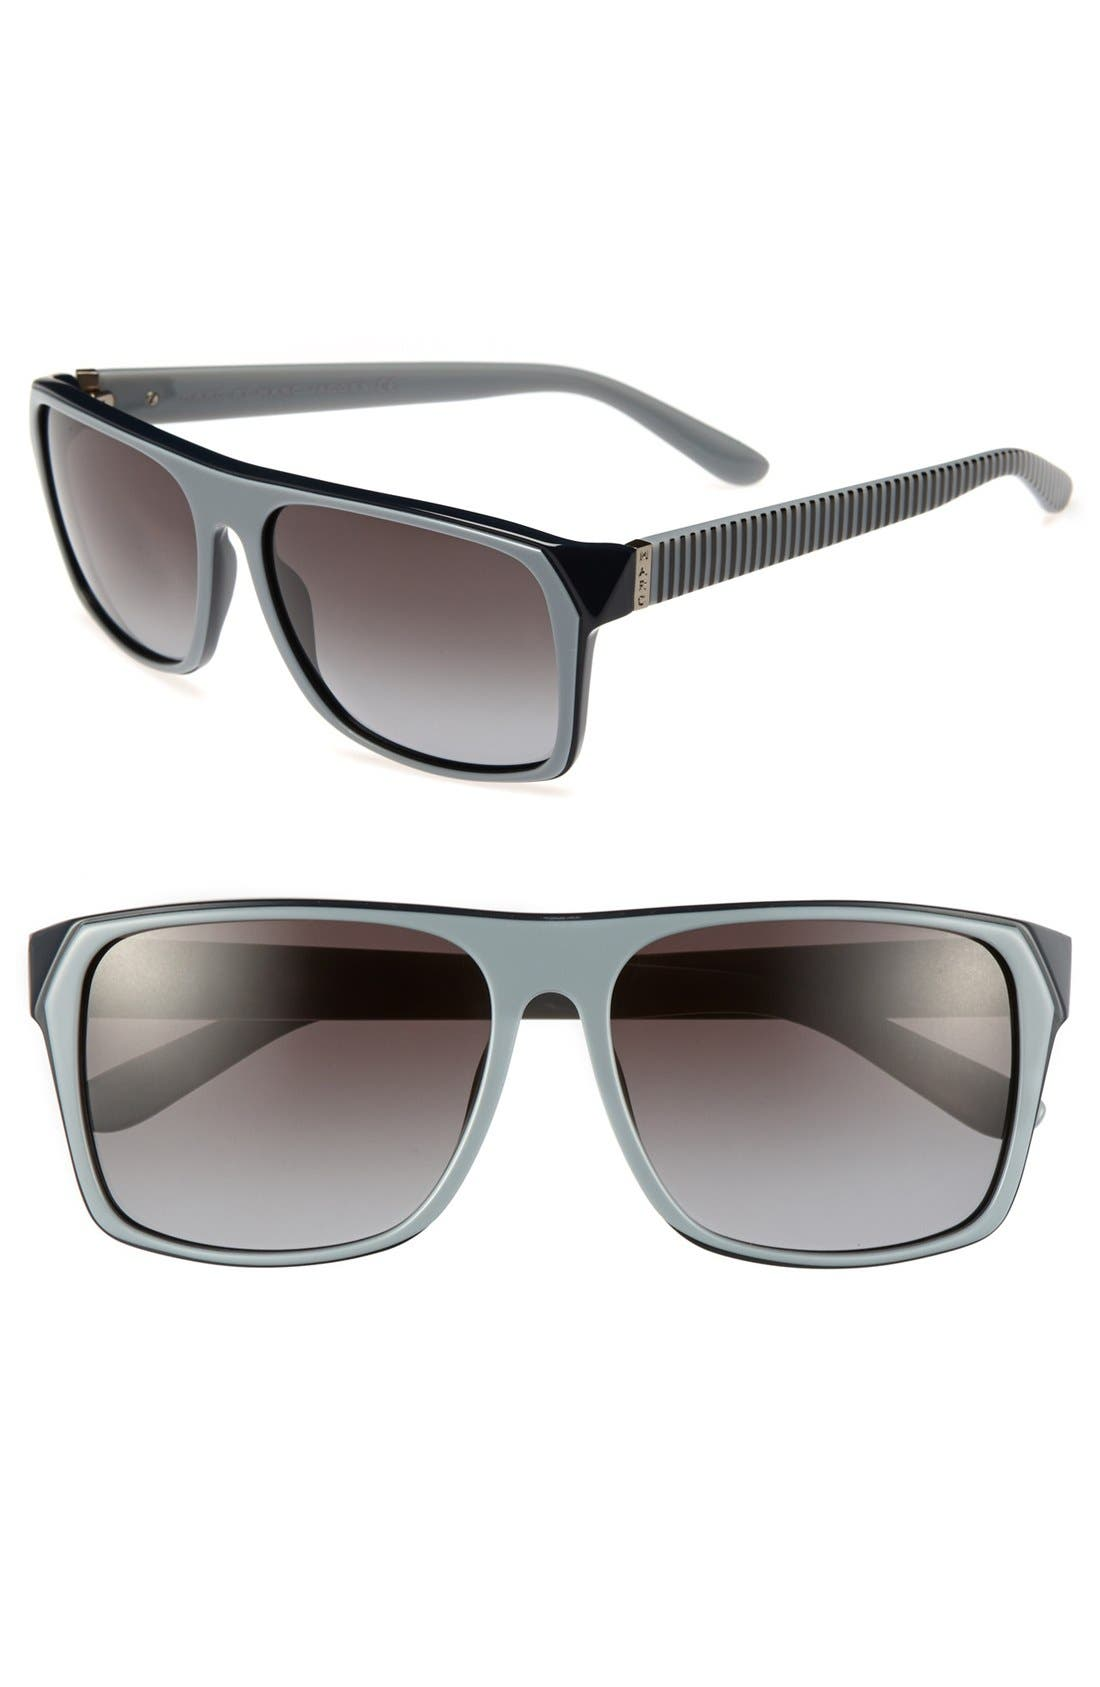 Main Image - MARC BY MARC JACOBS 58mm Sunglasses